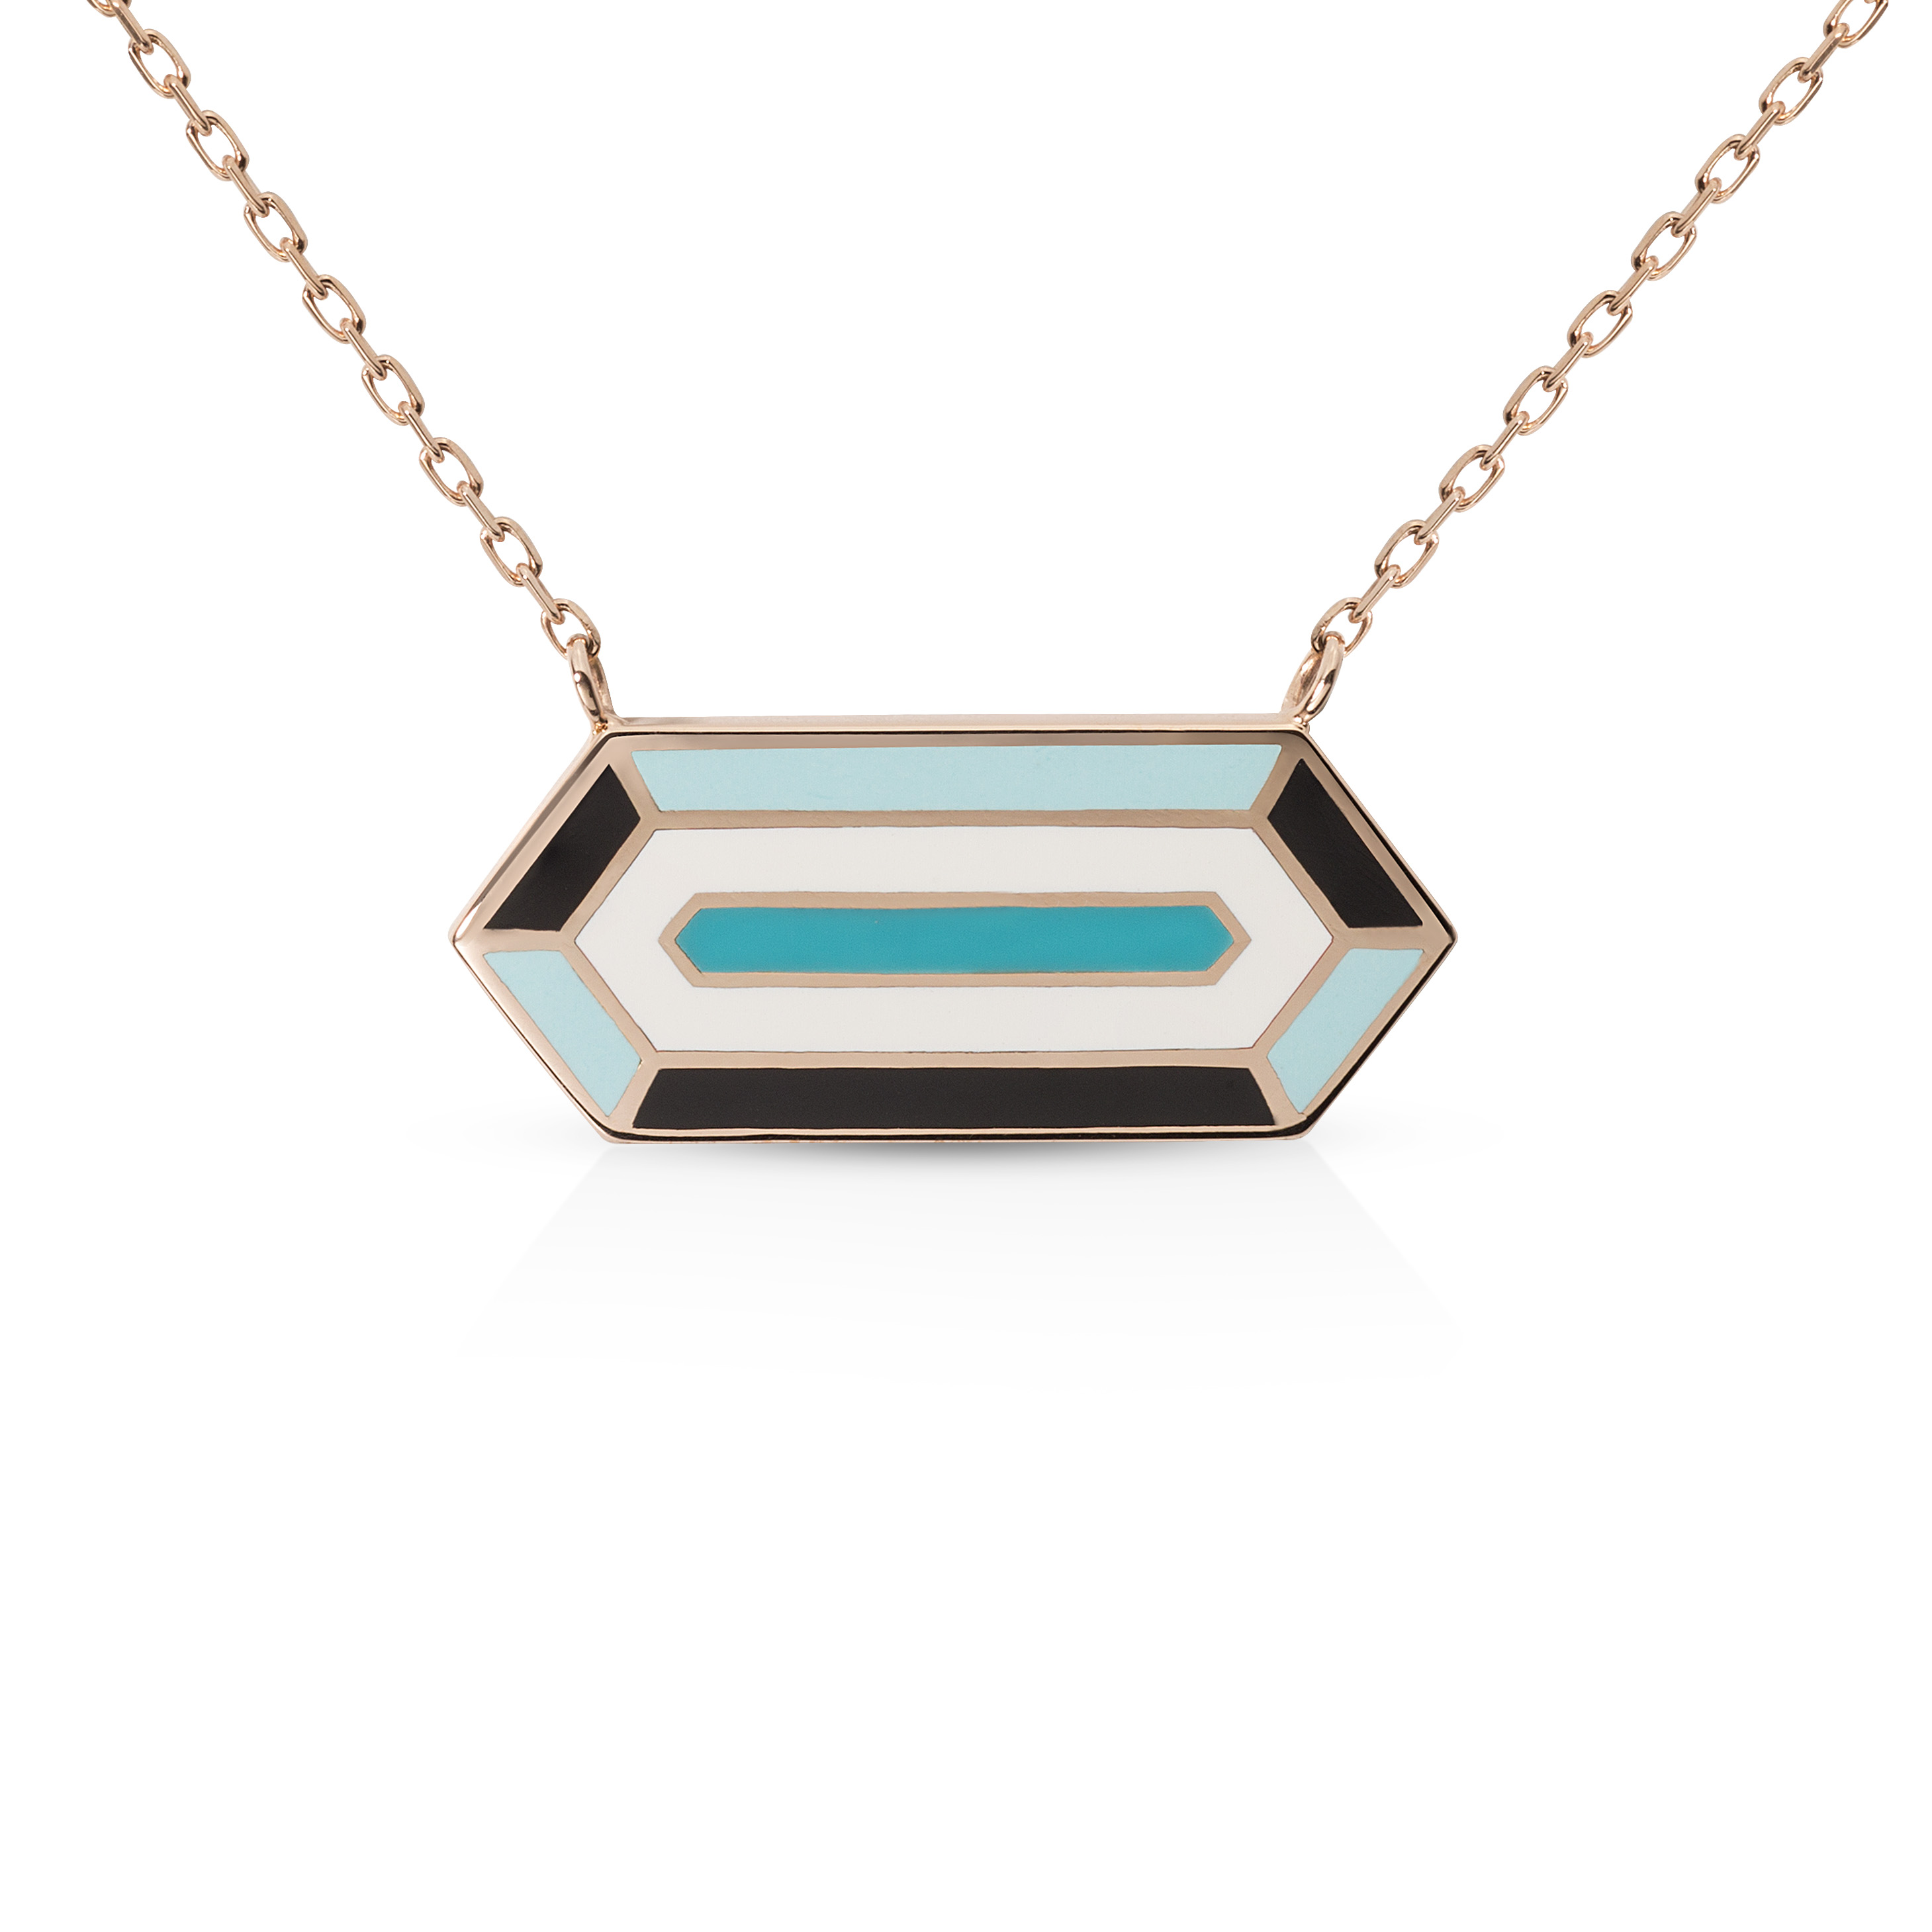 Avila Necklace - 18K Gold by Aveen on curated-crowd.com